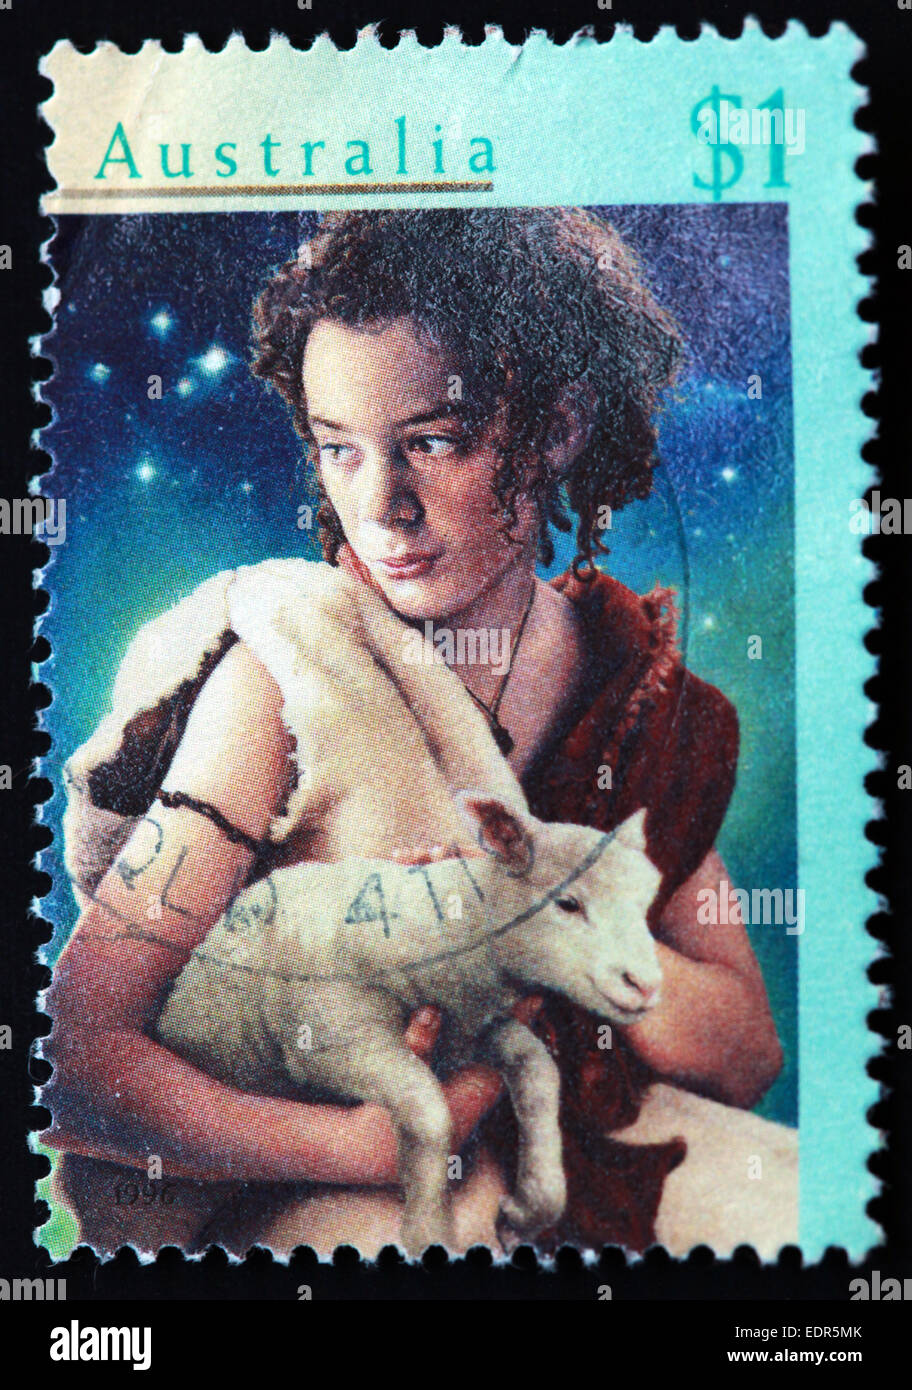 Used and postmarked Australia / Austrailian Stamp 1996 $1 Xmas - Stock Image